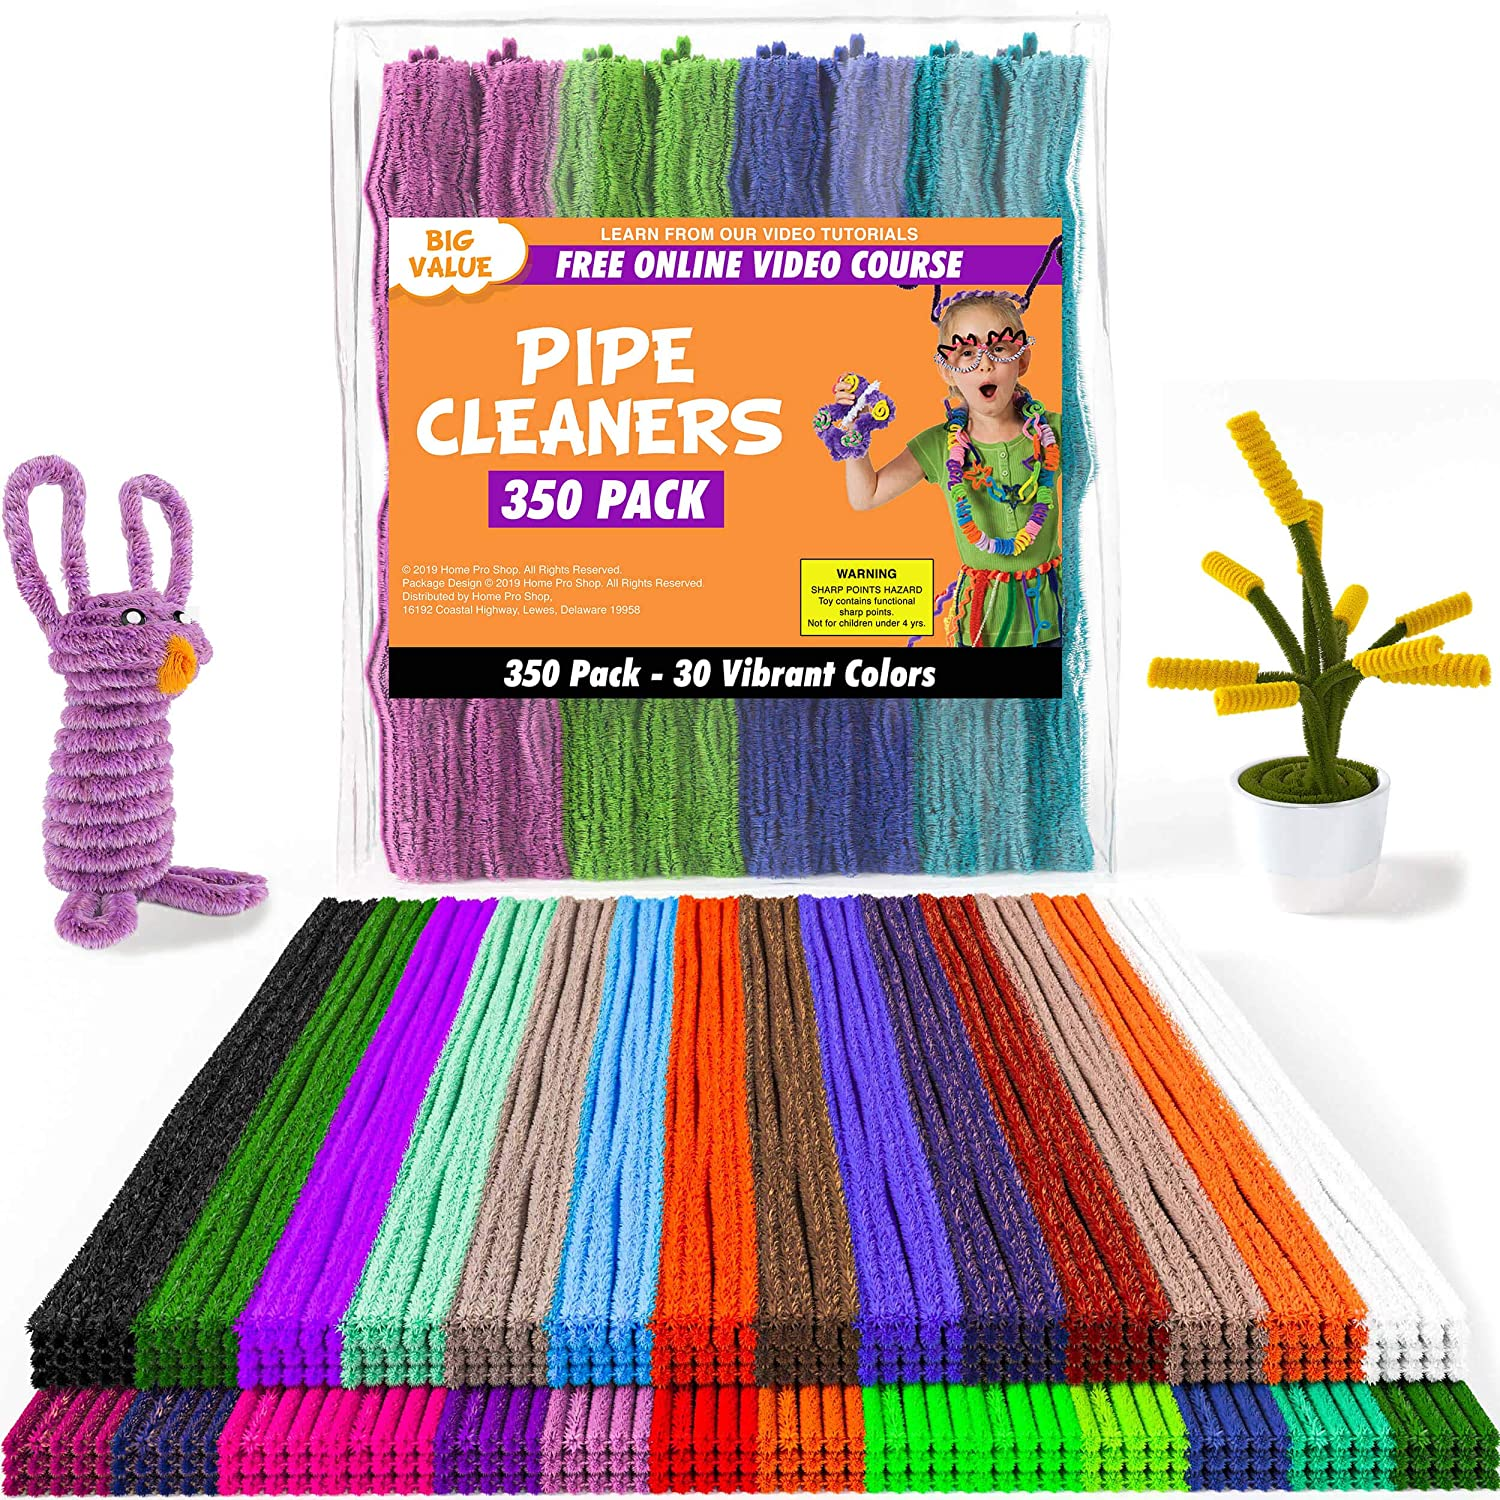 Anvin Pipe Cleaners 100 Pcs 10 Colors Chenille Stems for DIY Crafts Decorations Creative School Projects 6 mm x 12 Inch, Assorted Bright Colors